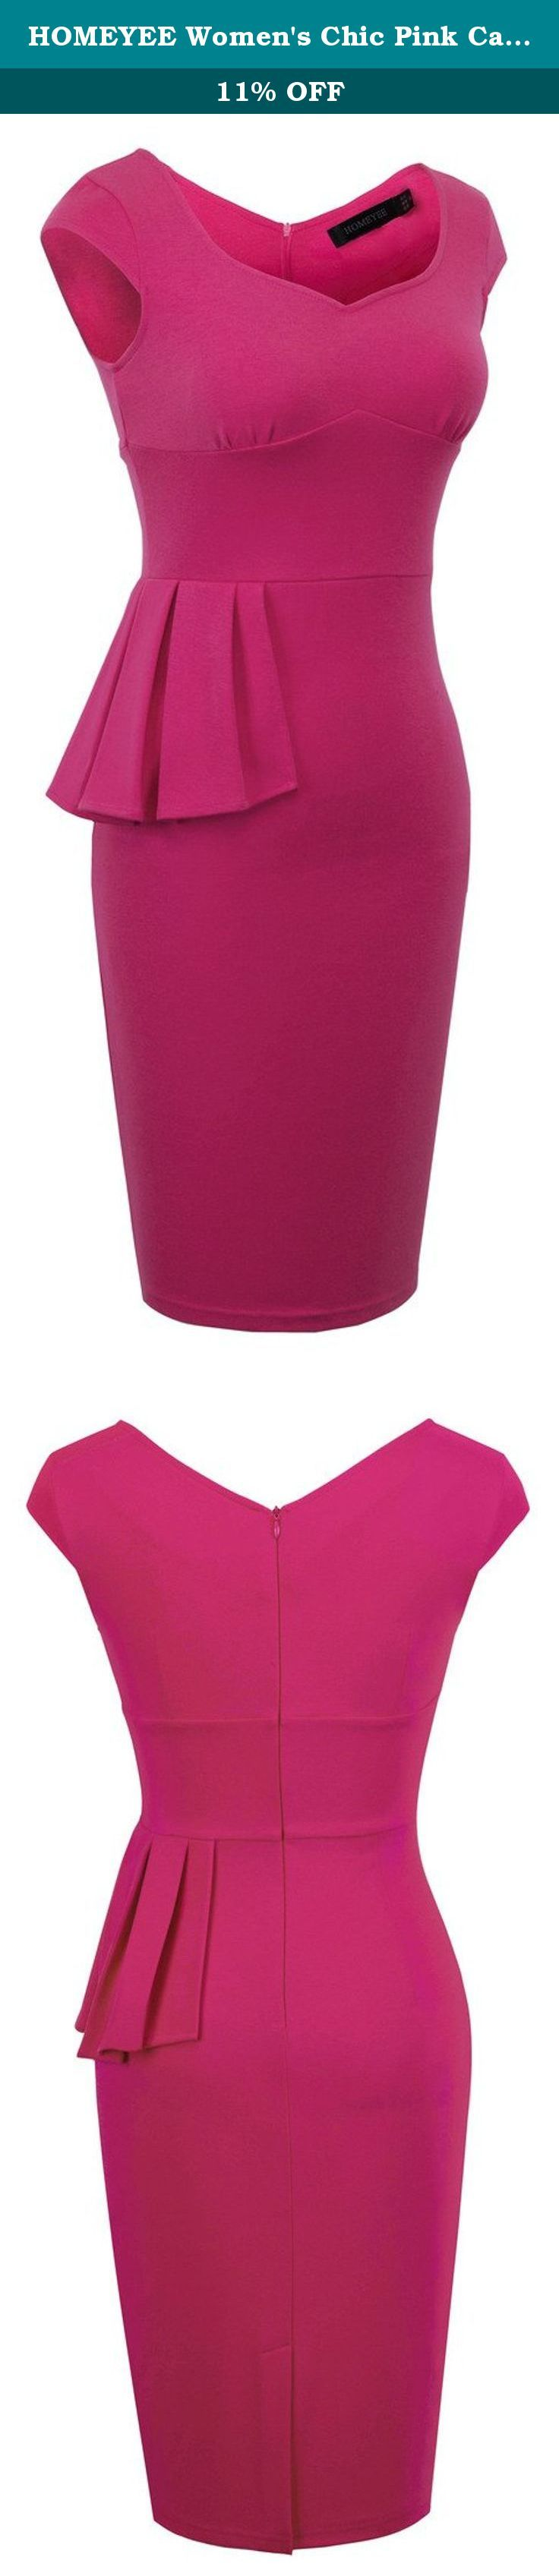 HOMEYEE Women's Chic Pink Cap Sleeve Peplum Wear to Work Pencil Dress B292 (6, Pink). *Dress Description: This stylish, cap sleeve, sweetheart neckline, knee-length , pink dress that could be dressed up or down depending on the occasion: for example, worn for daytime business,church or for evening cocktail,party and prom.This is also a vintage stretchy elegant style that's vibrant and comfy. *Size Information (just for reference): Please remember to check the size chart before you order…